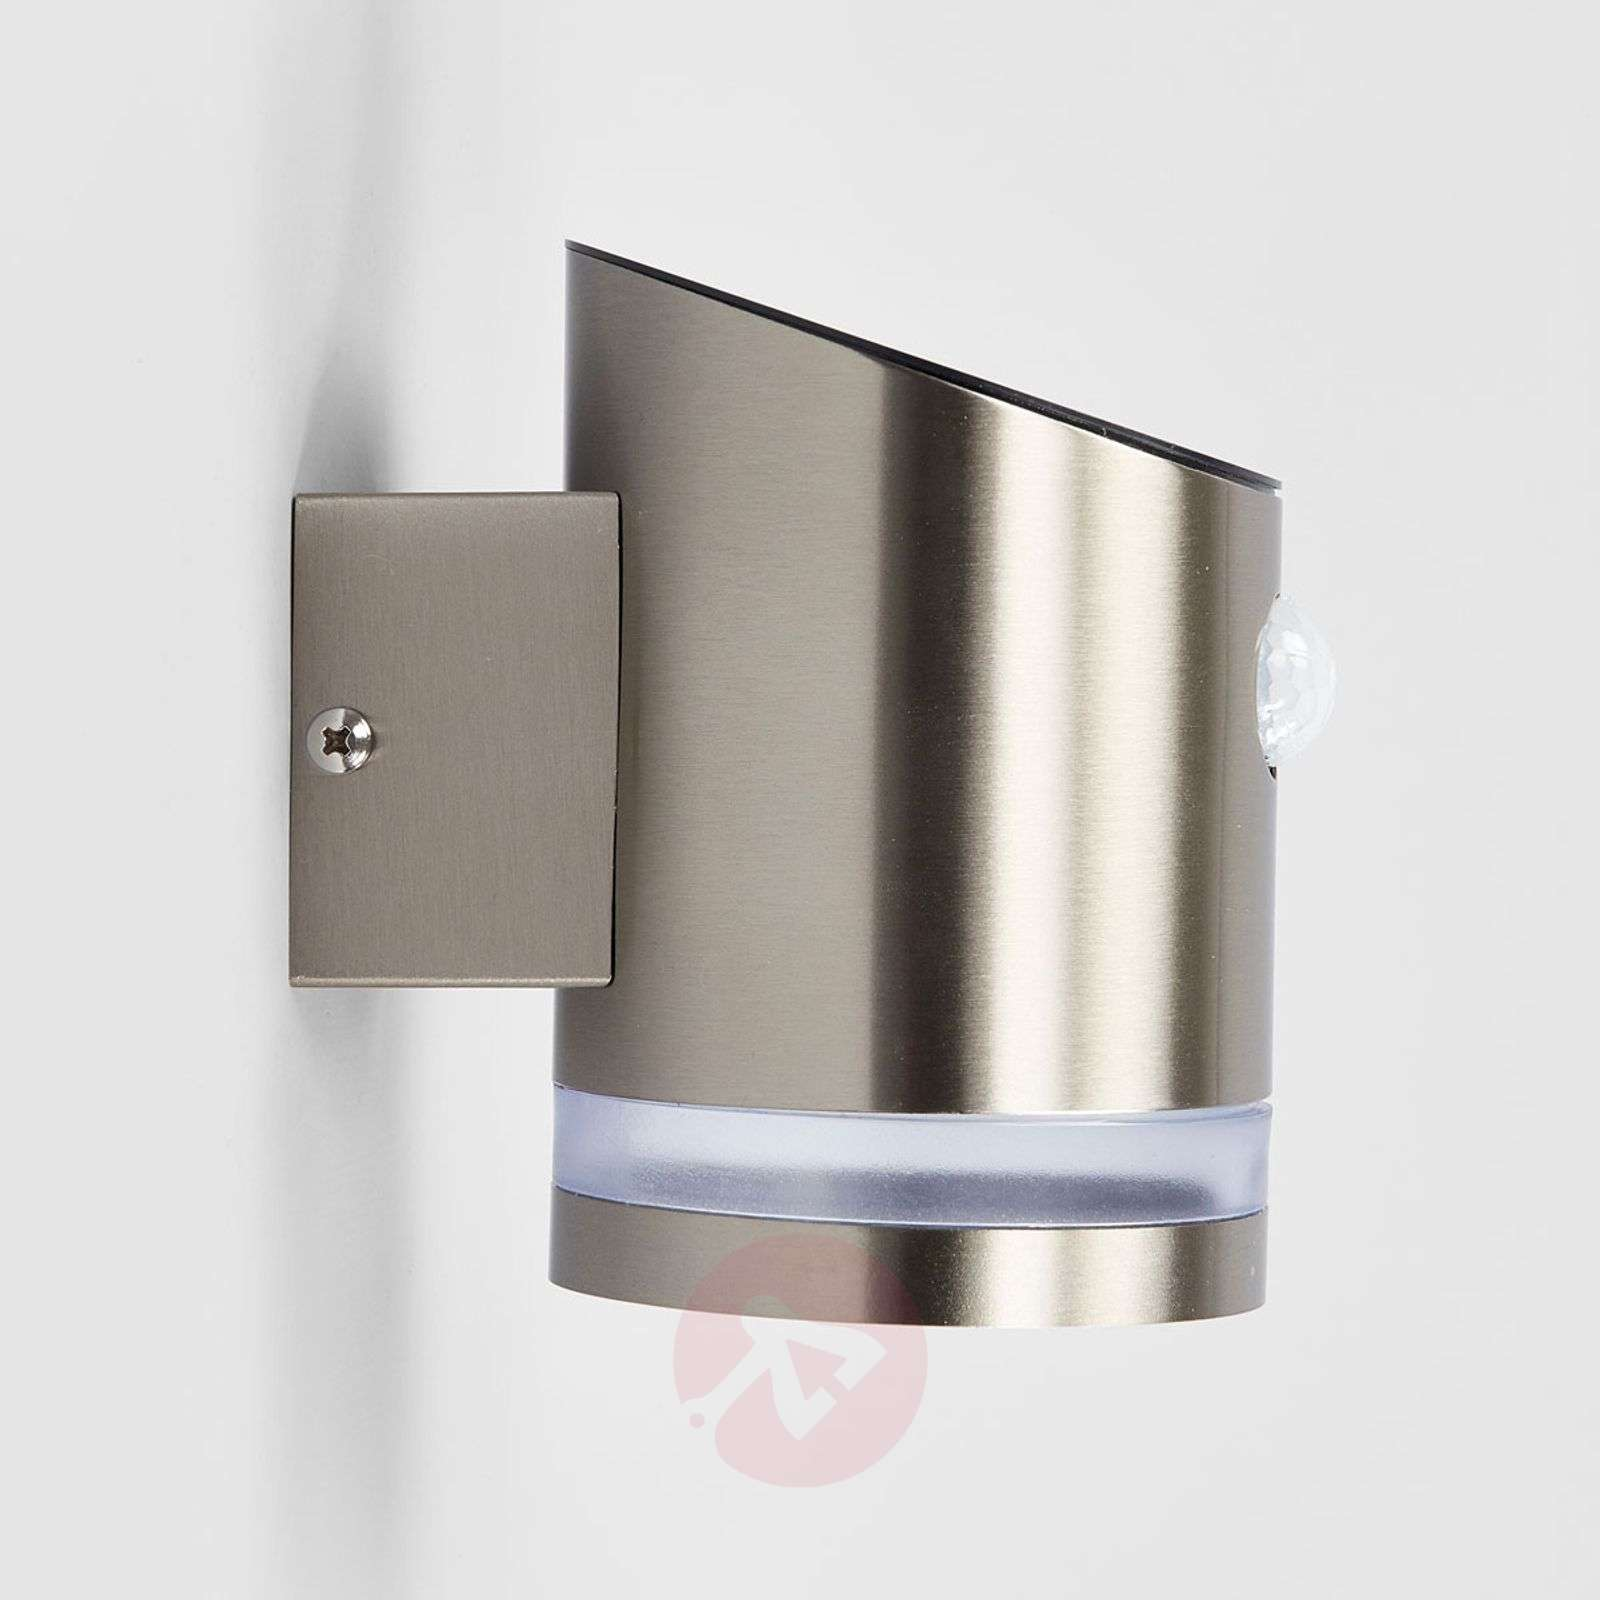 Stainless steel solar wall lamp Romina with LEDs-9945188-02